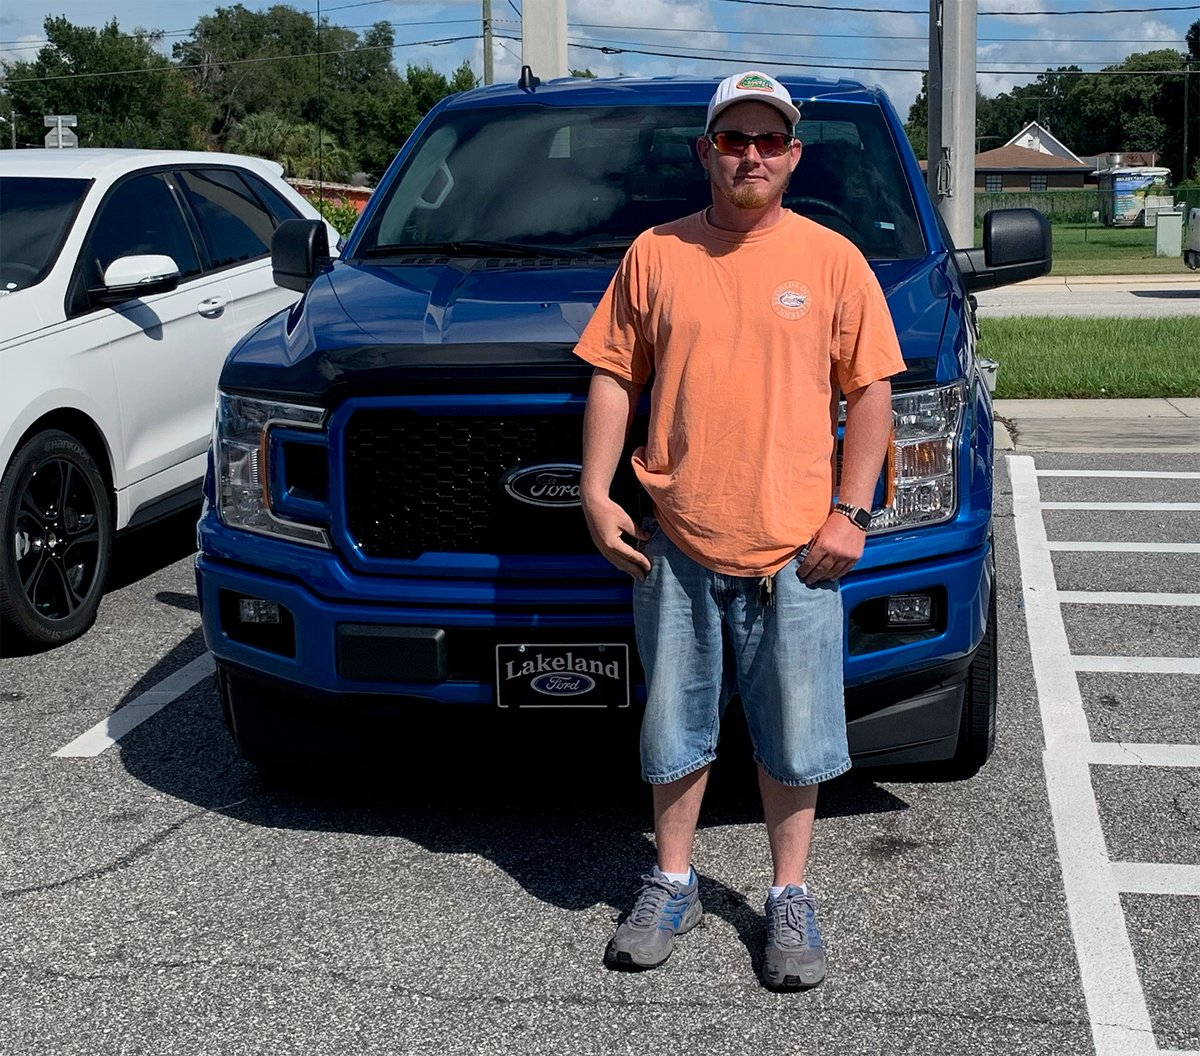 Bryan Randall came from #WinterHaven to #LakelandFord to get his new #F150 - #LookingGood Bryan and a #GreatChoice - #ThankYou for your business and if we can do anything, don't hesitate... we're here for you! #NewTruck #BuiltFordTough #GreatDeal #Truck